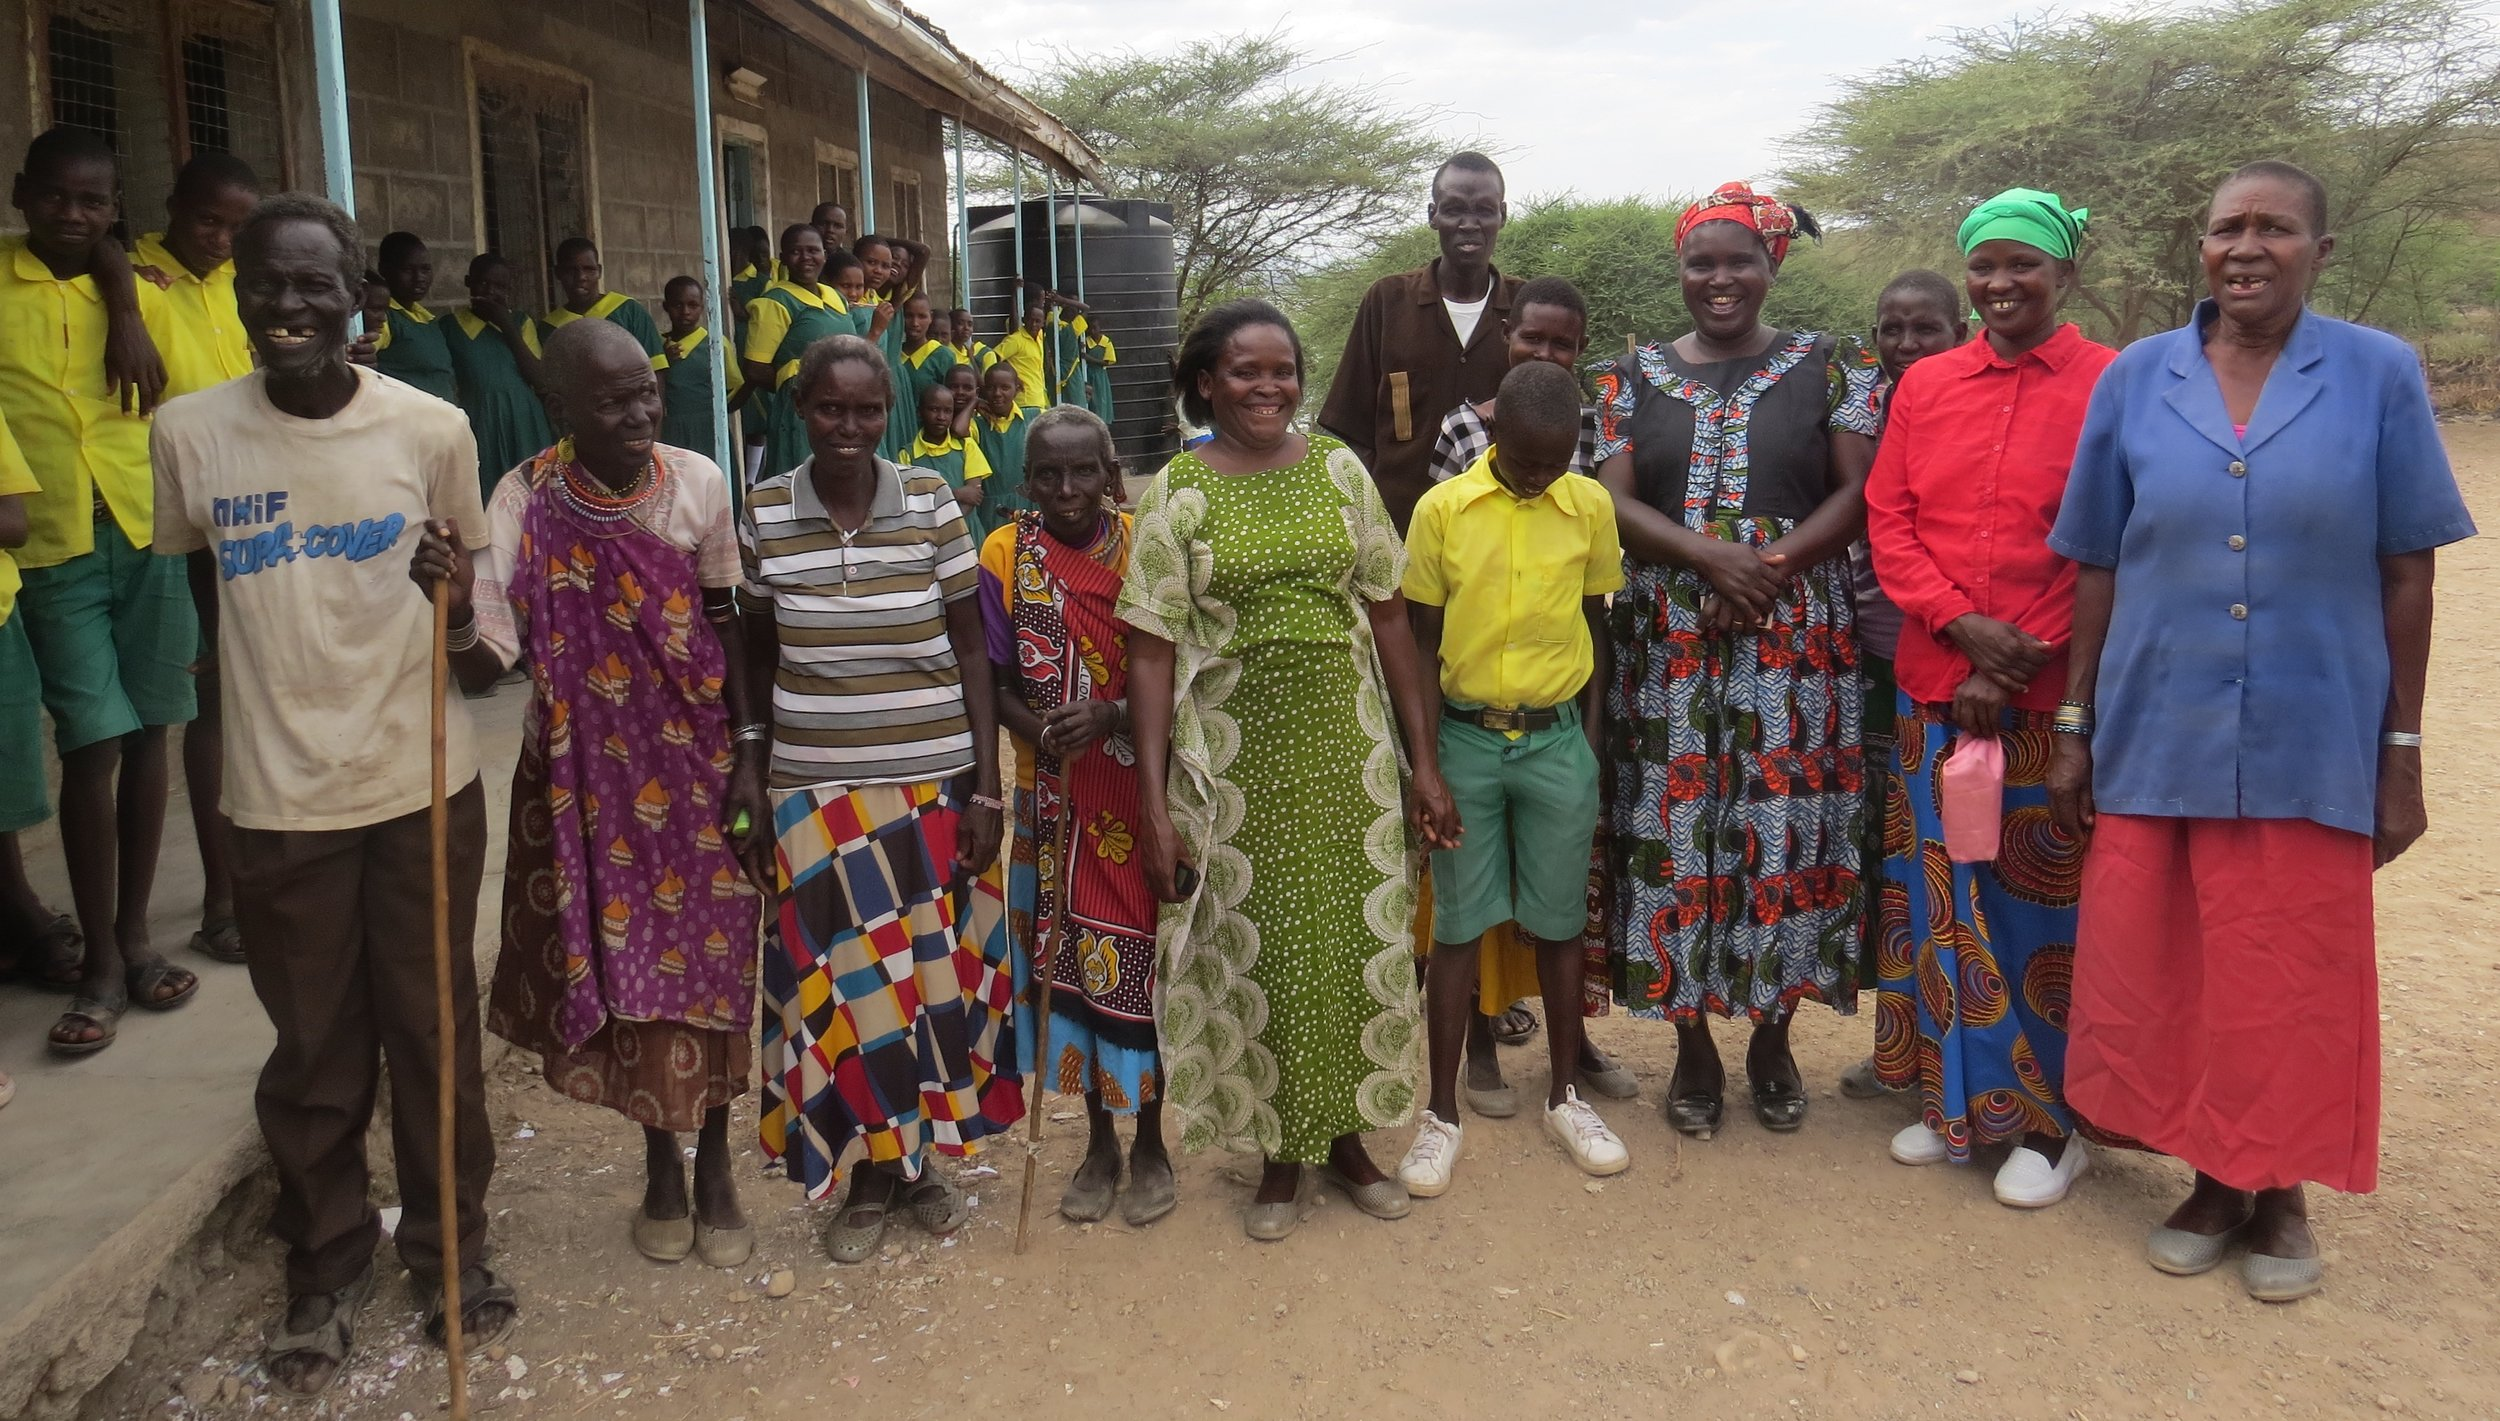 January 2019 at Lake Baringo - Kokwa Primary School - parents of students who received primary school scholarships in January, 2019